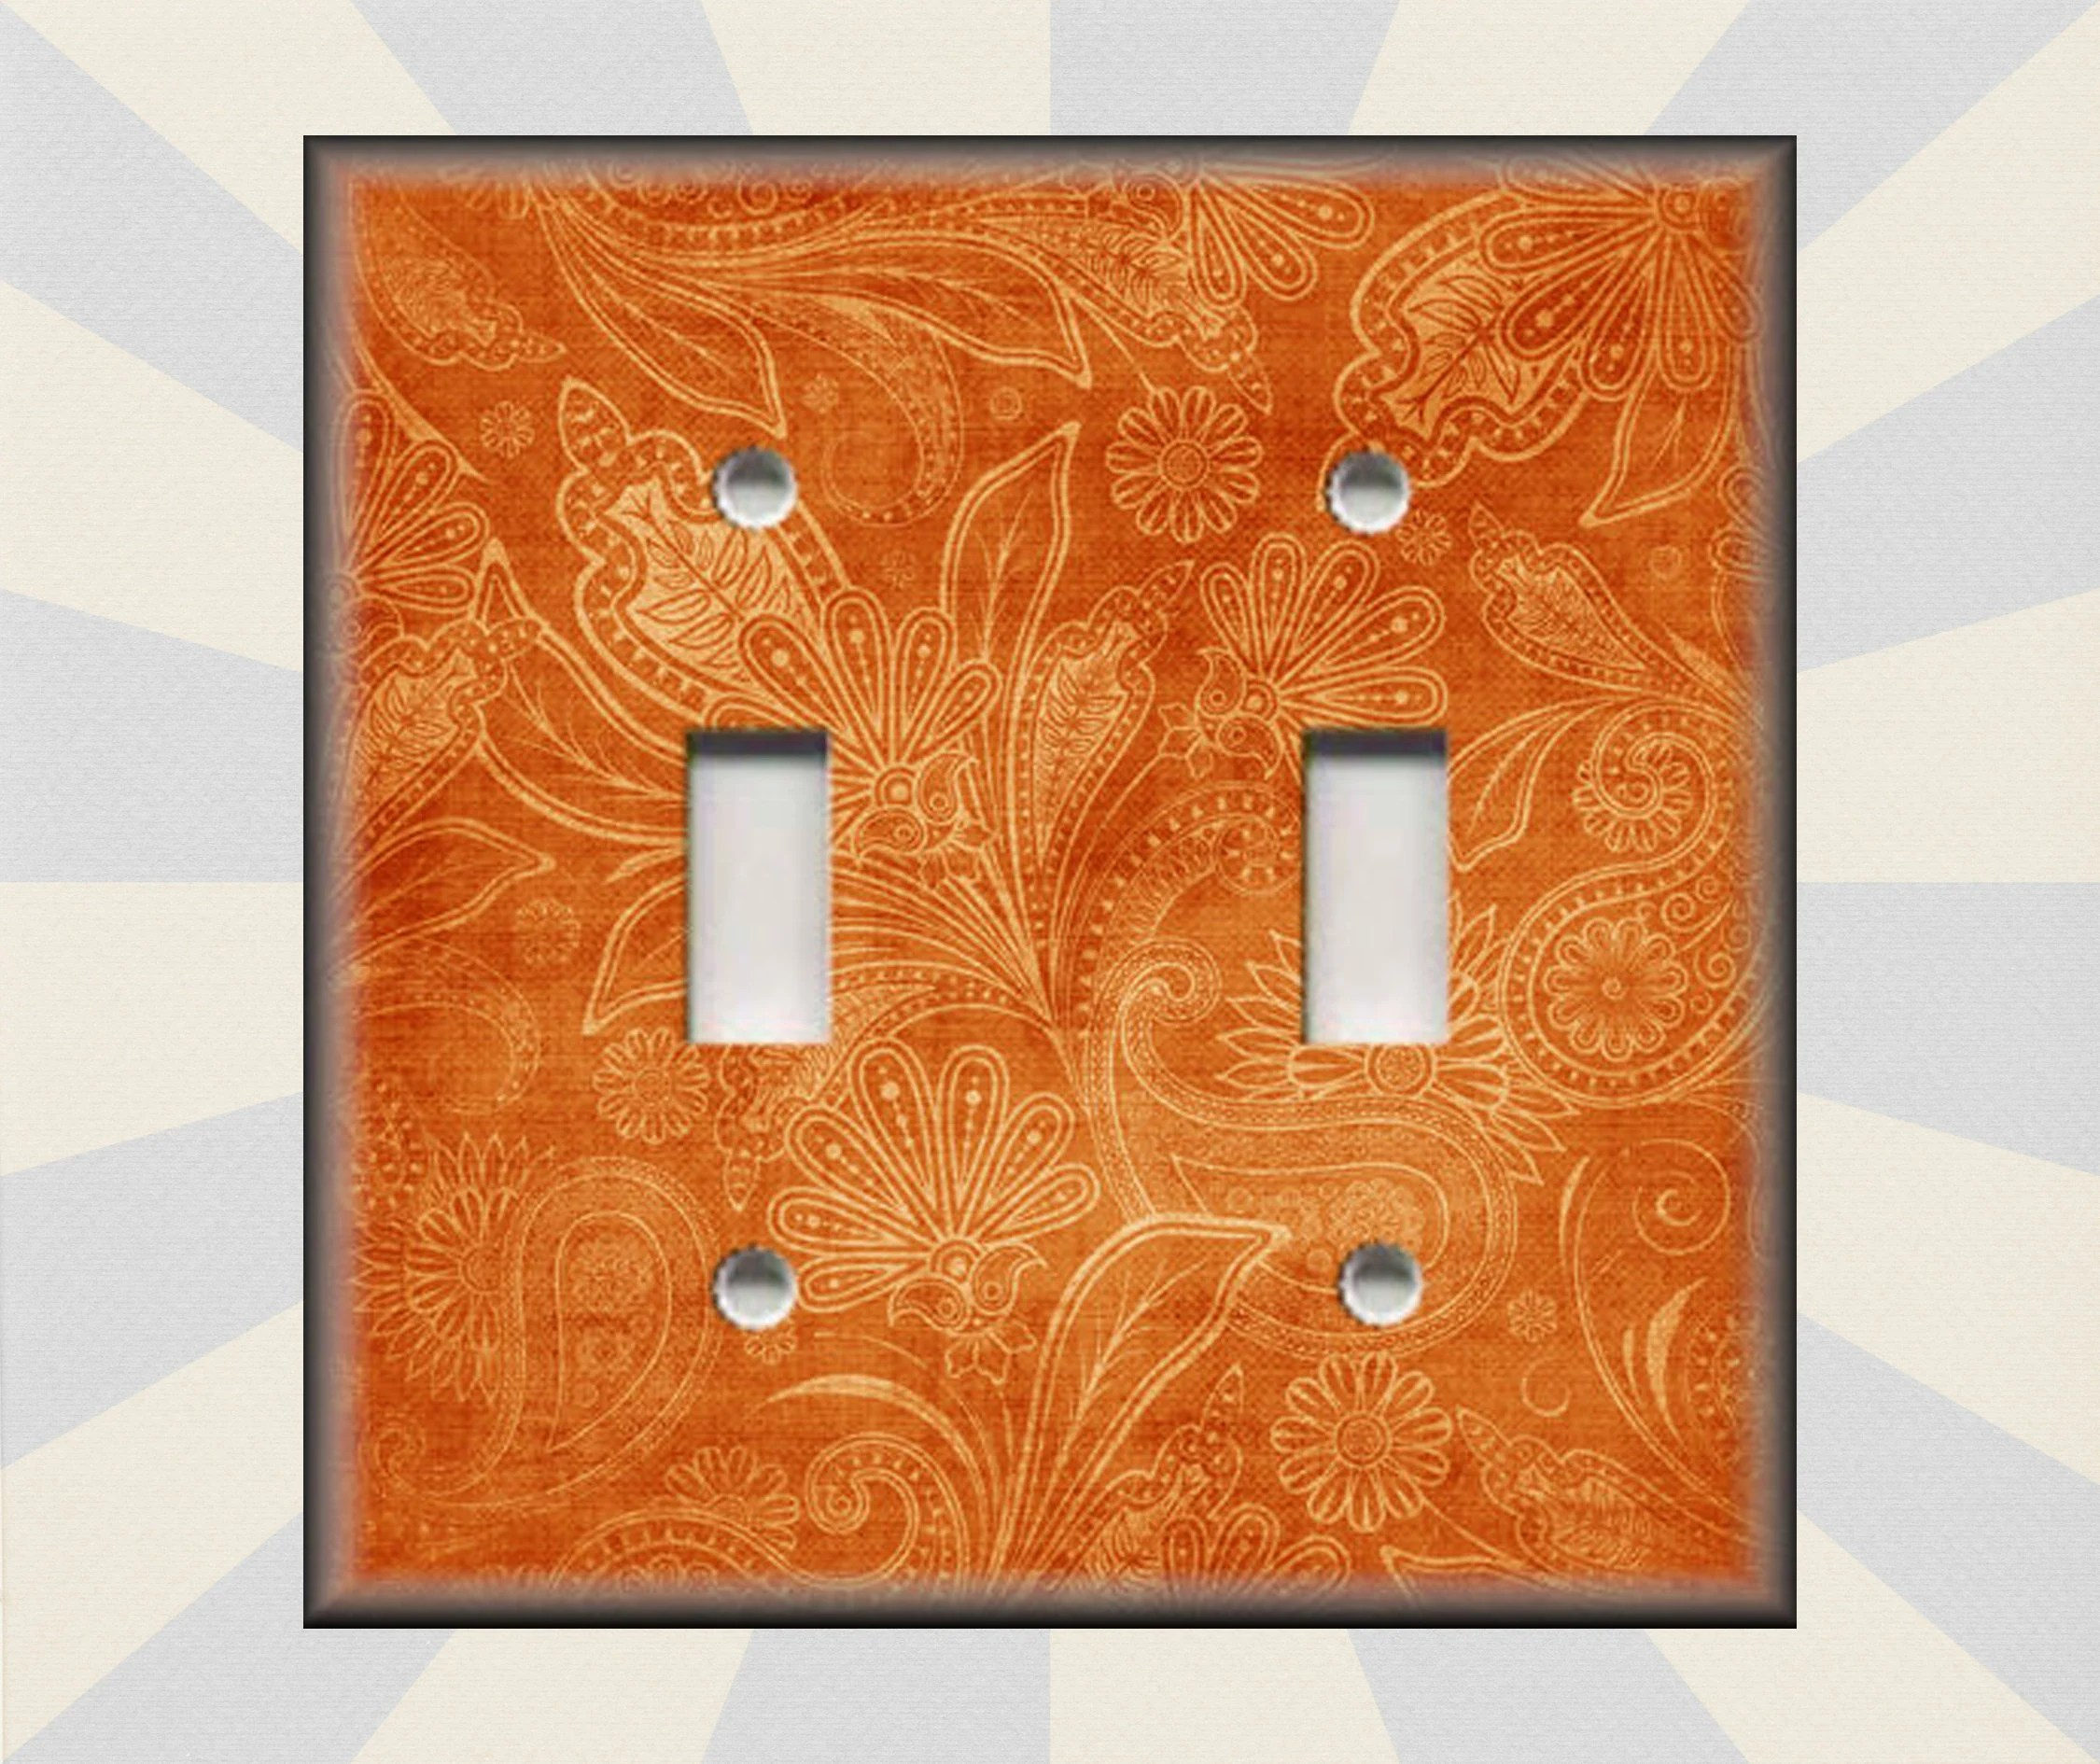 Vintage Light Switch Plate Covers Metal Light Switch Plate Cover Vintage Gypsy Floral Orange Boho Home Decor Switch Plates And Outlet Covers Triples Free Shipping